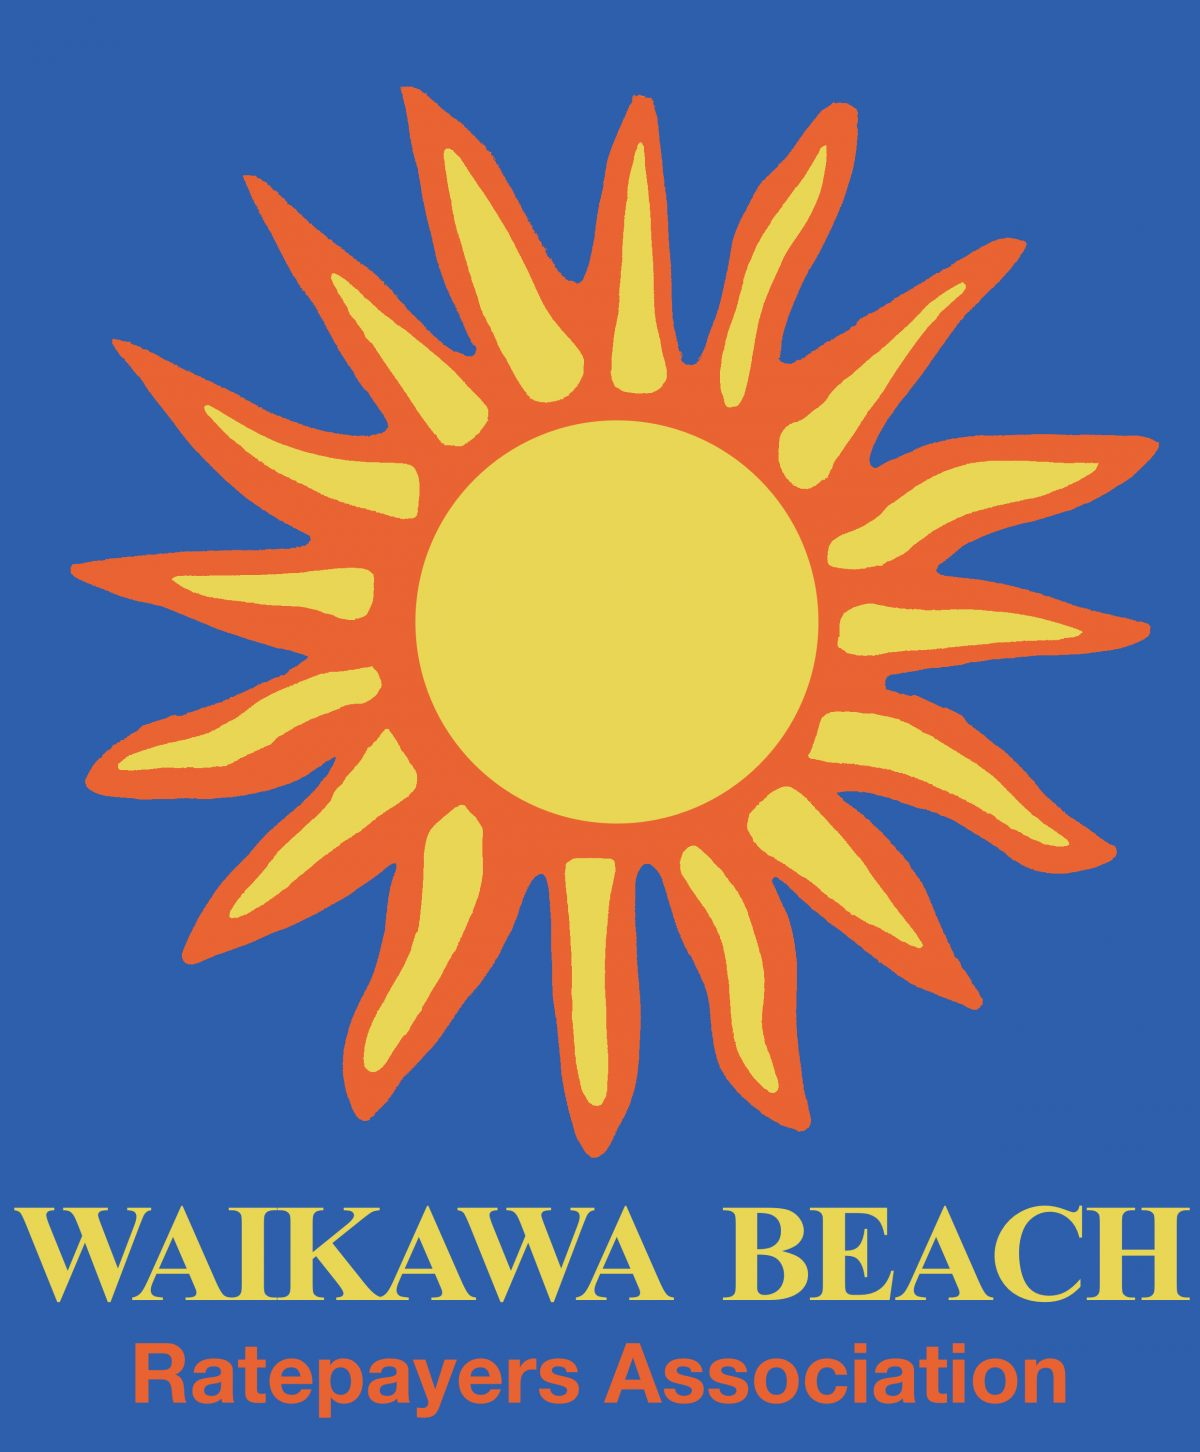 Waikawa Beach Ratepayers Association.